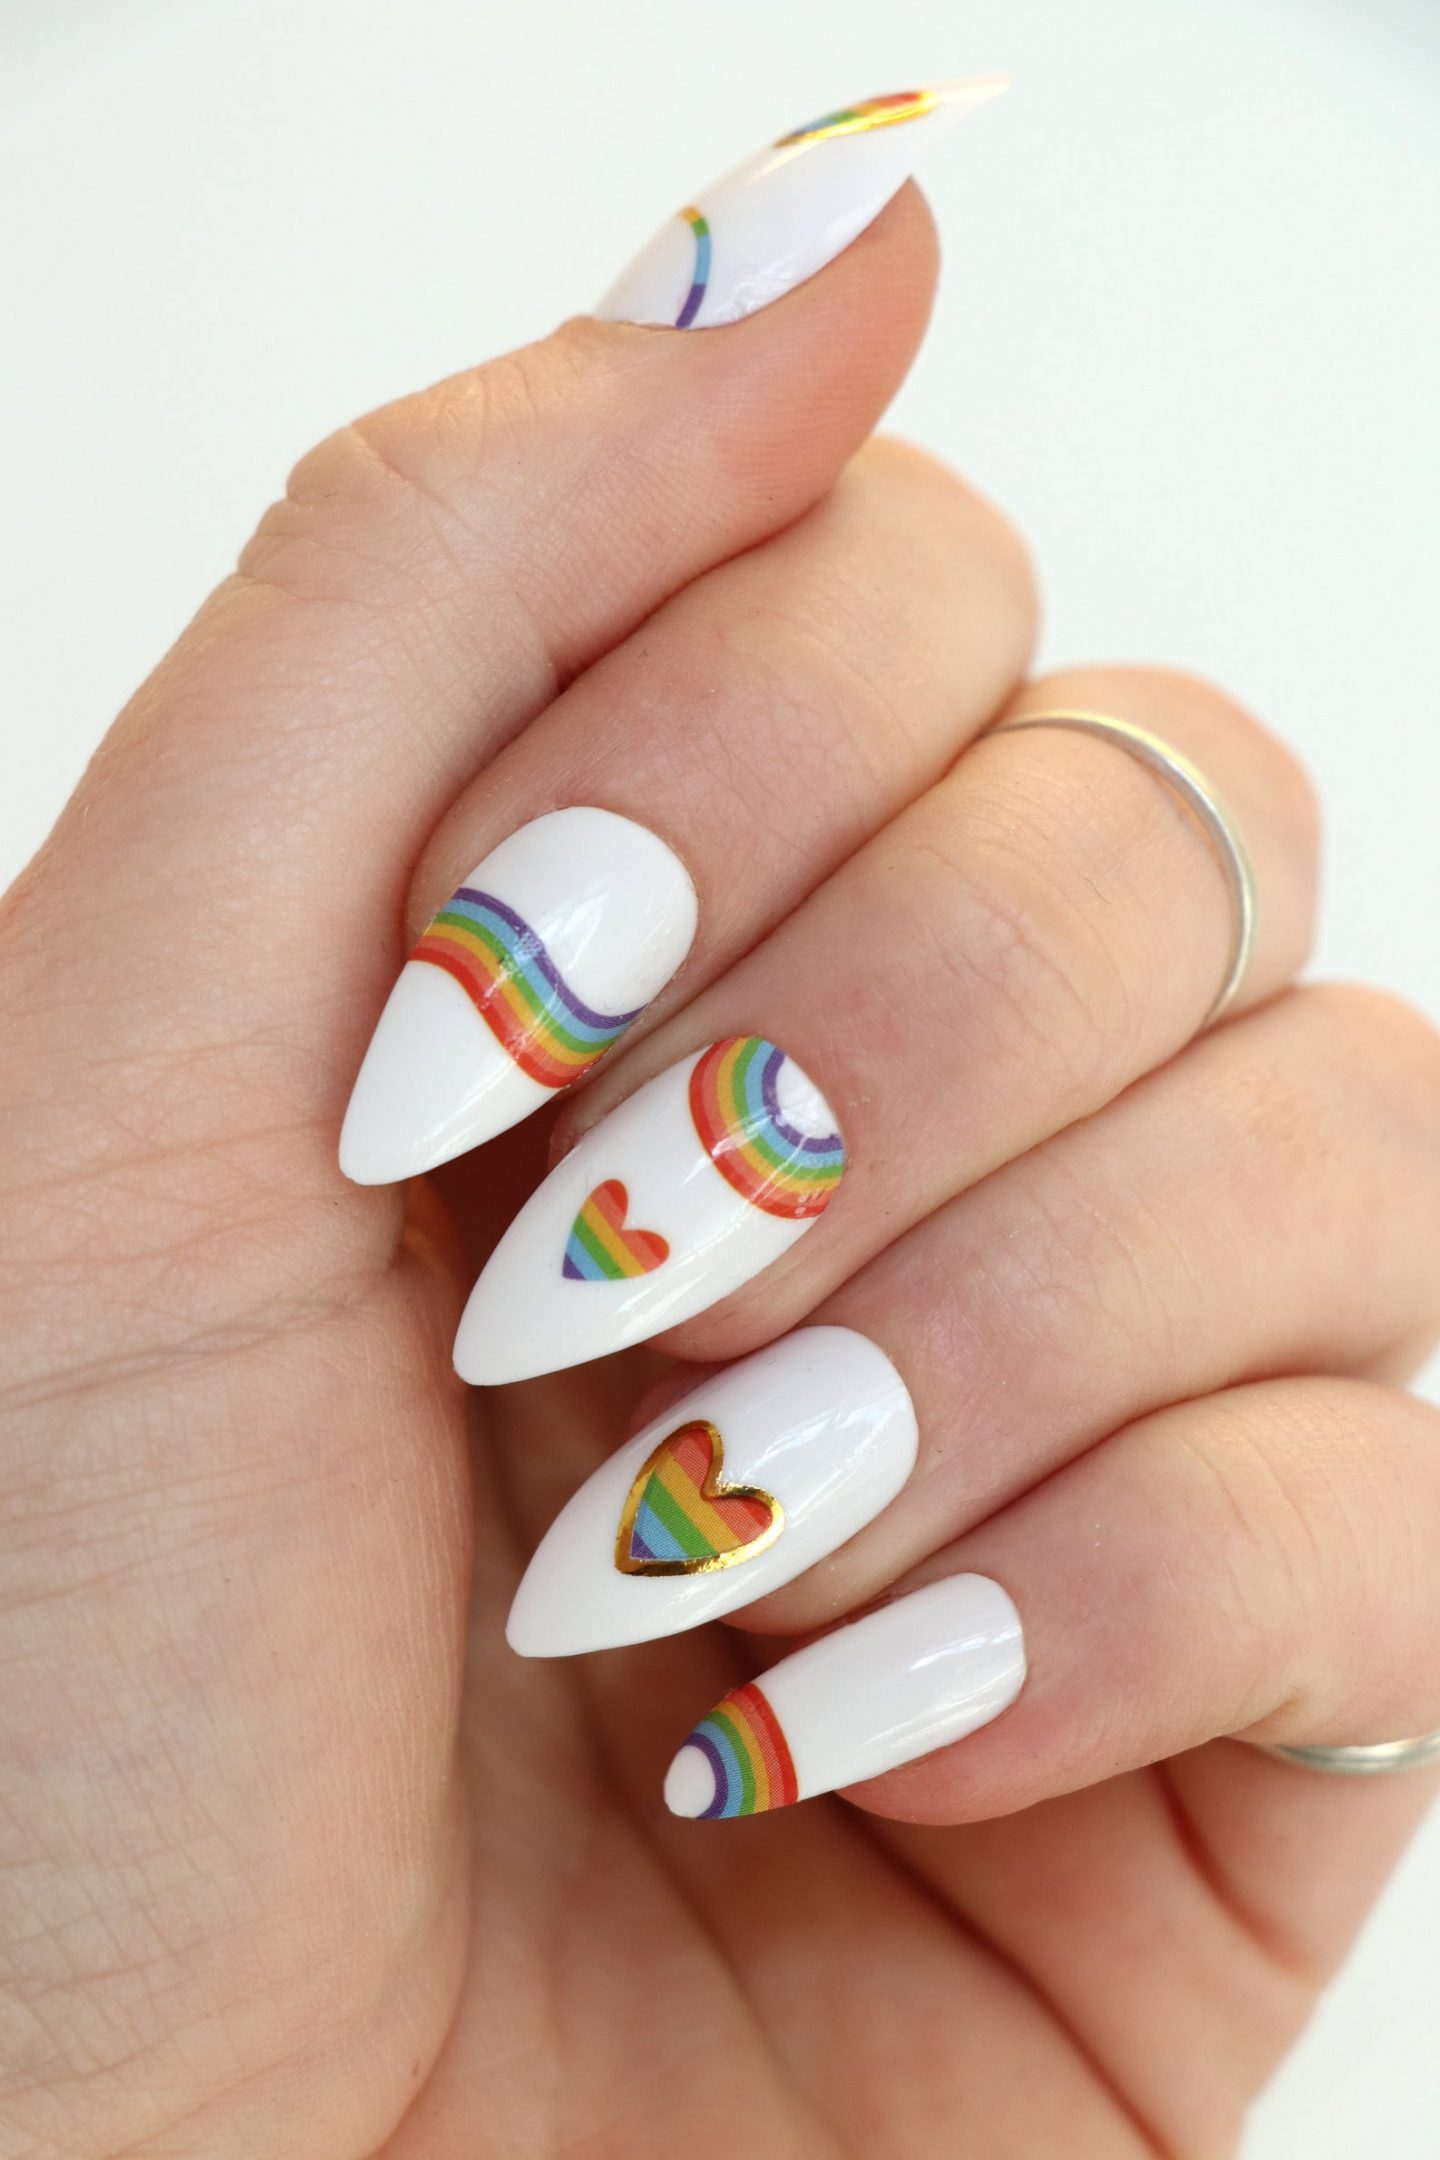 Rainbow nail decals, stickers and wraps with hearts